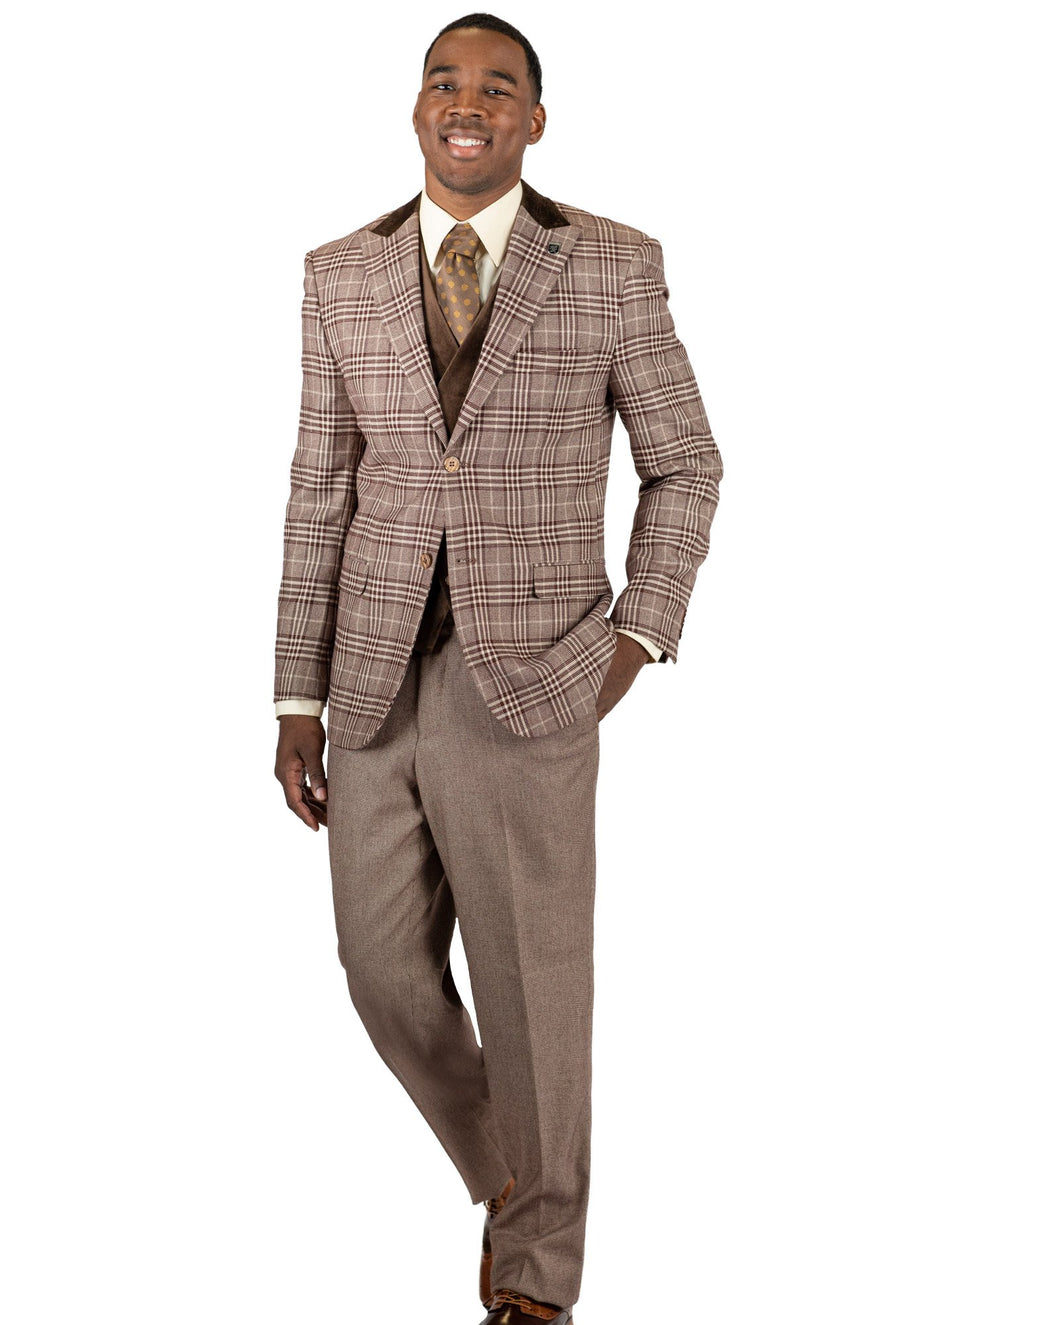 Stacy Adams Single Breasted 2 Button Suit - 8132 ROY T MIX (2 Colors)